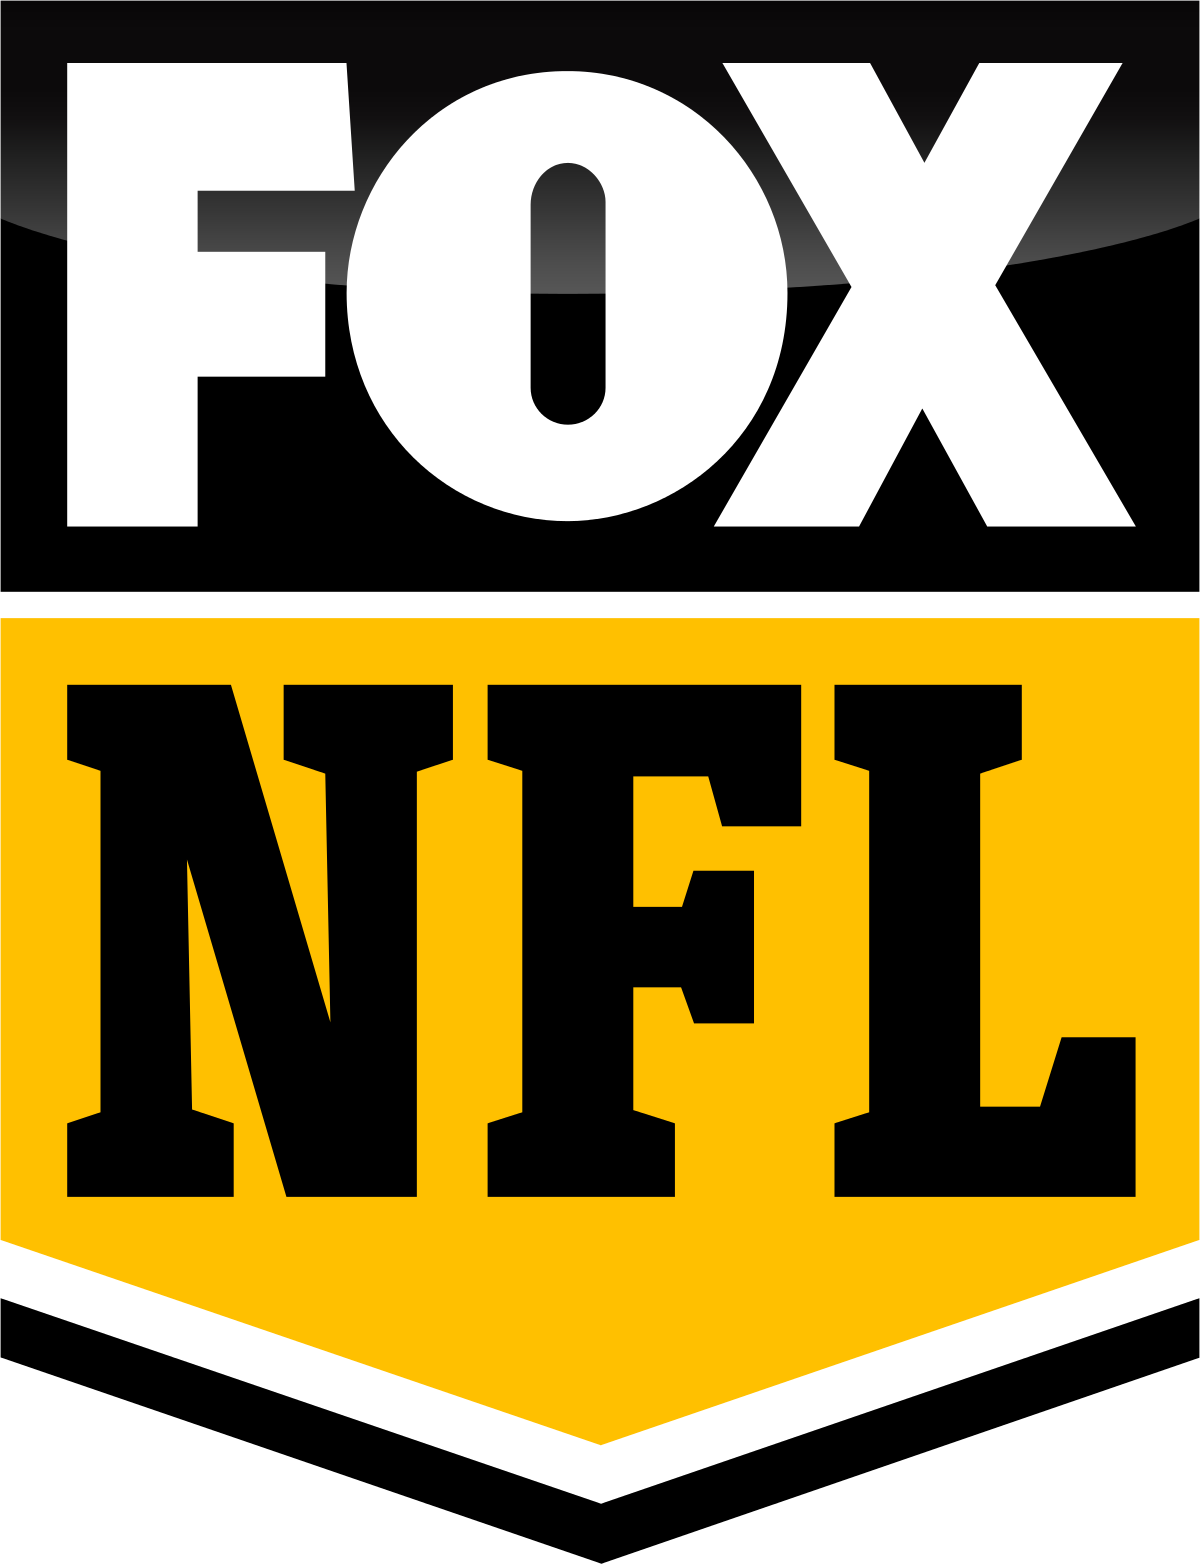 Sunday ticket logo png. Fox nfl wikipedia